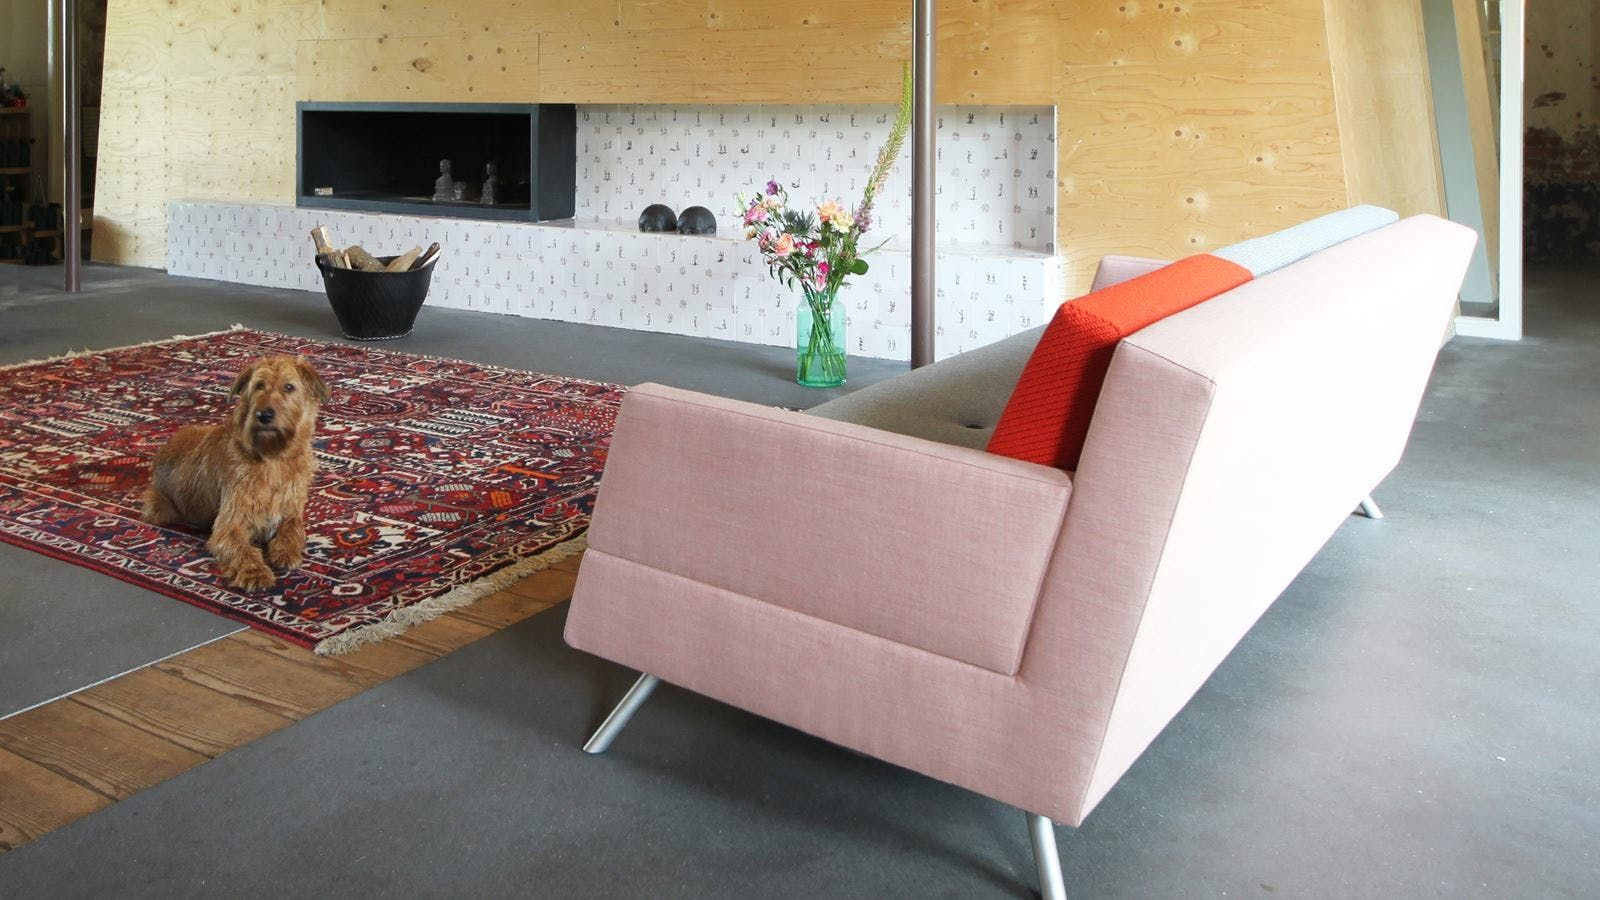 5 Dutch Design Trends We Want in the USA, ASAP